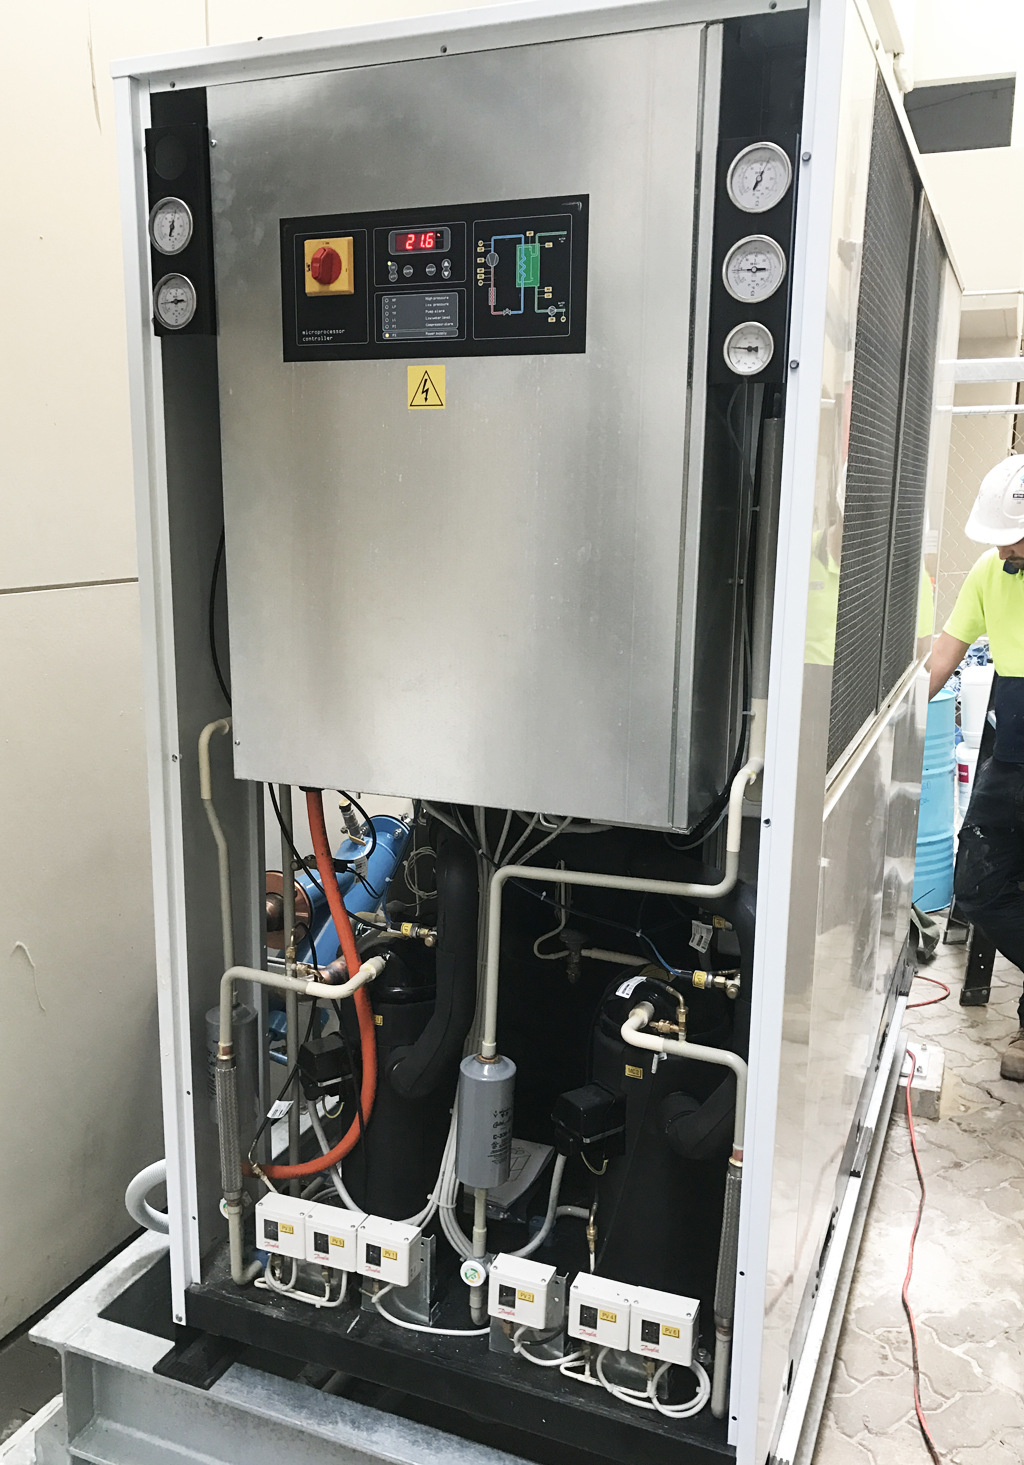 InterContinental_Hotel_Perth_Glycol_Chiller_Refrigeration.jpg